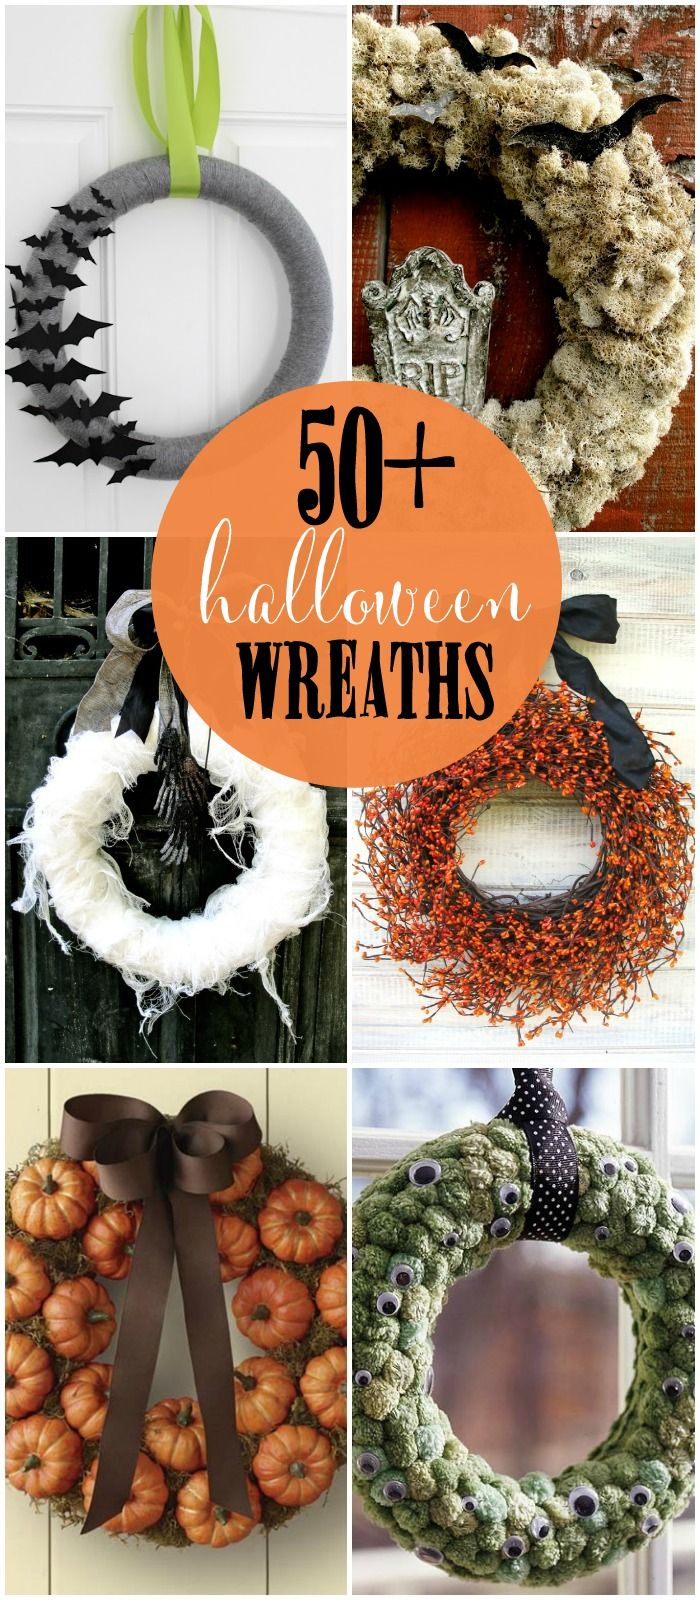 50 DIY Halloween Wreaths so many